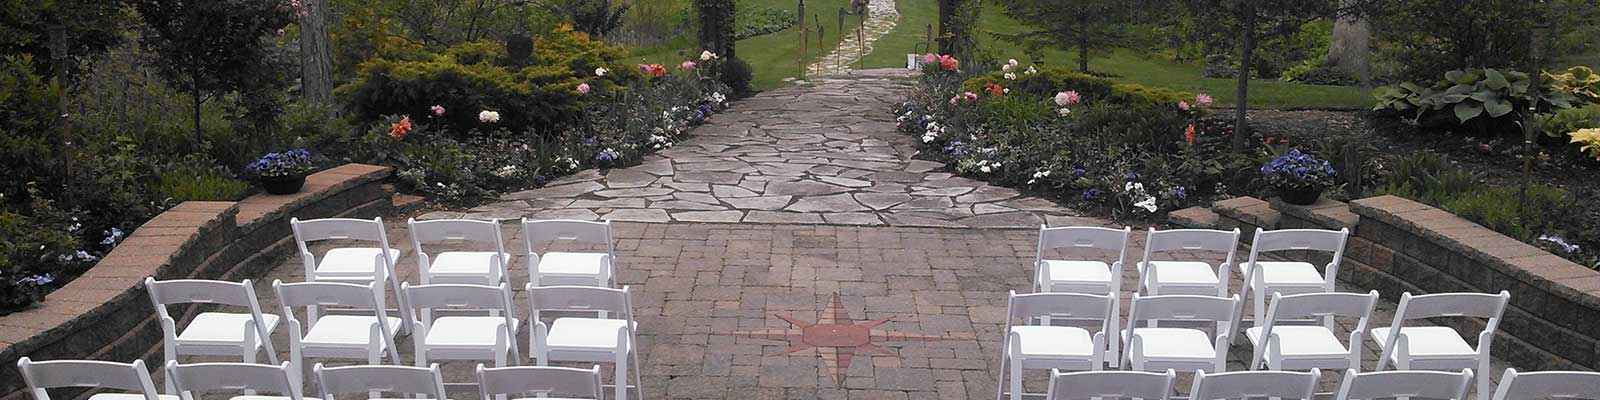 Event rentals in Livingston County and Washtenaw County